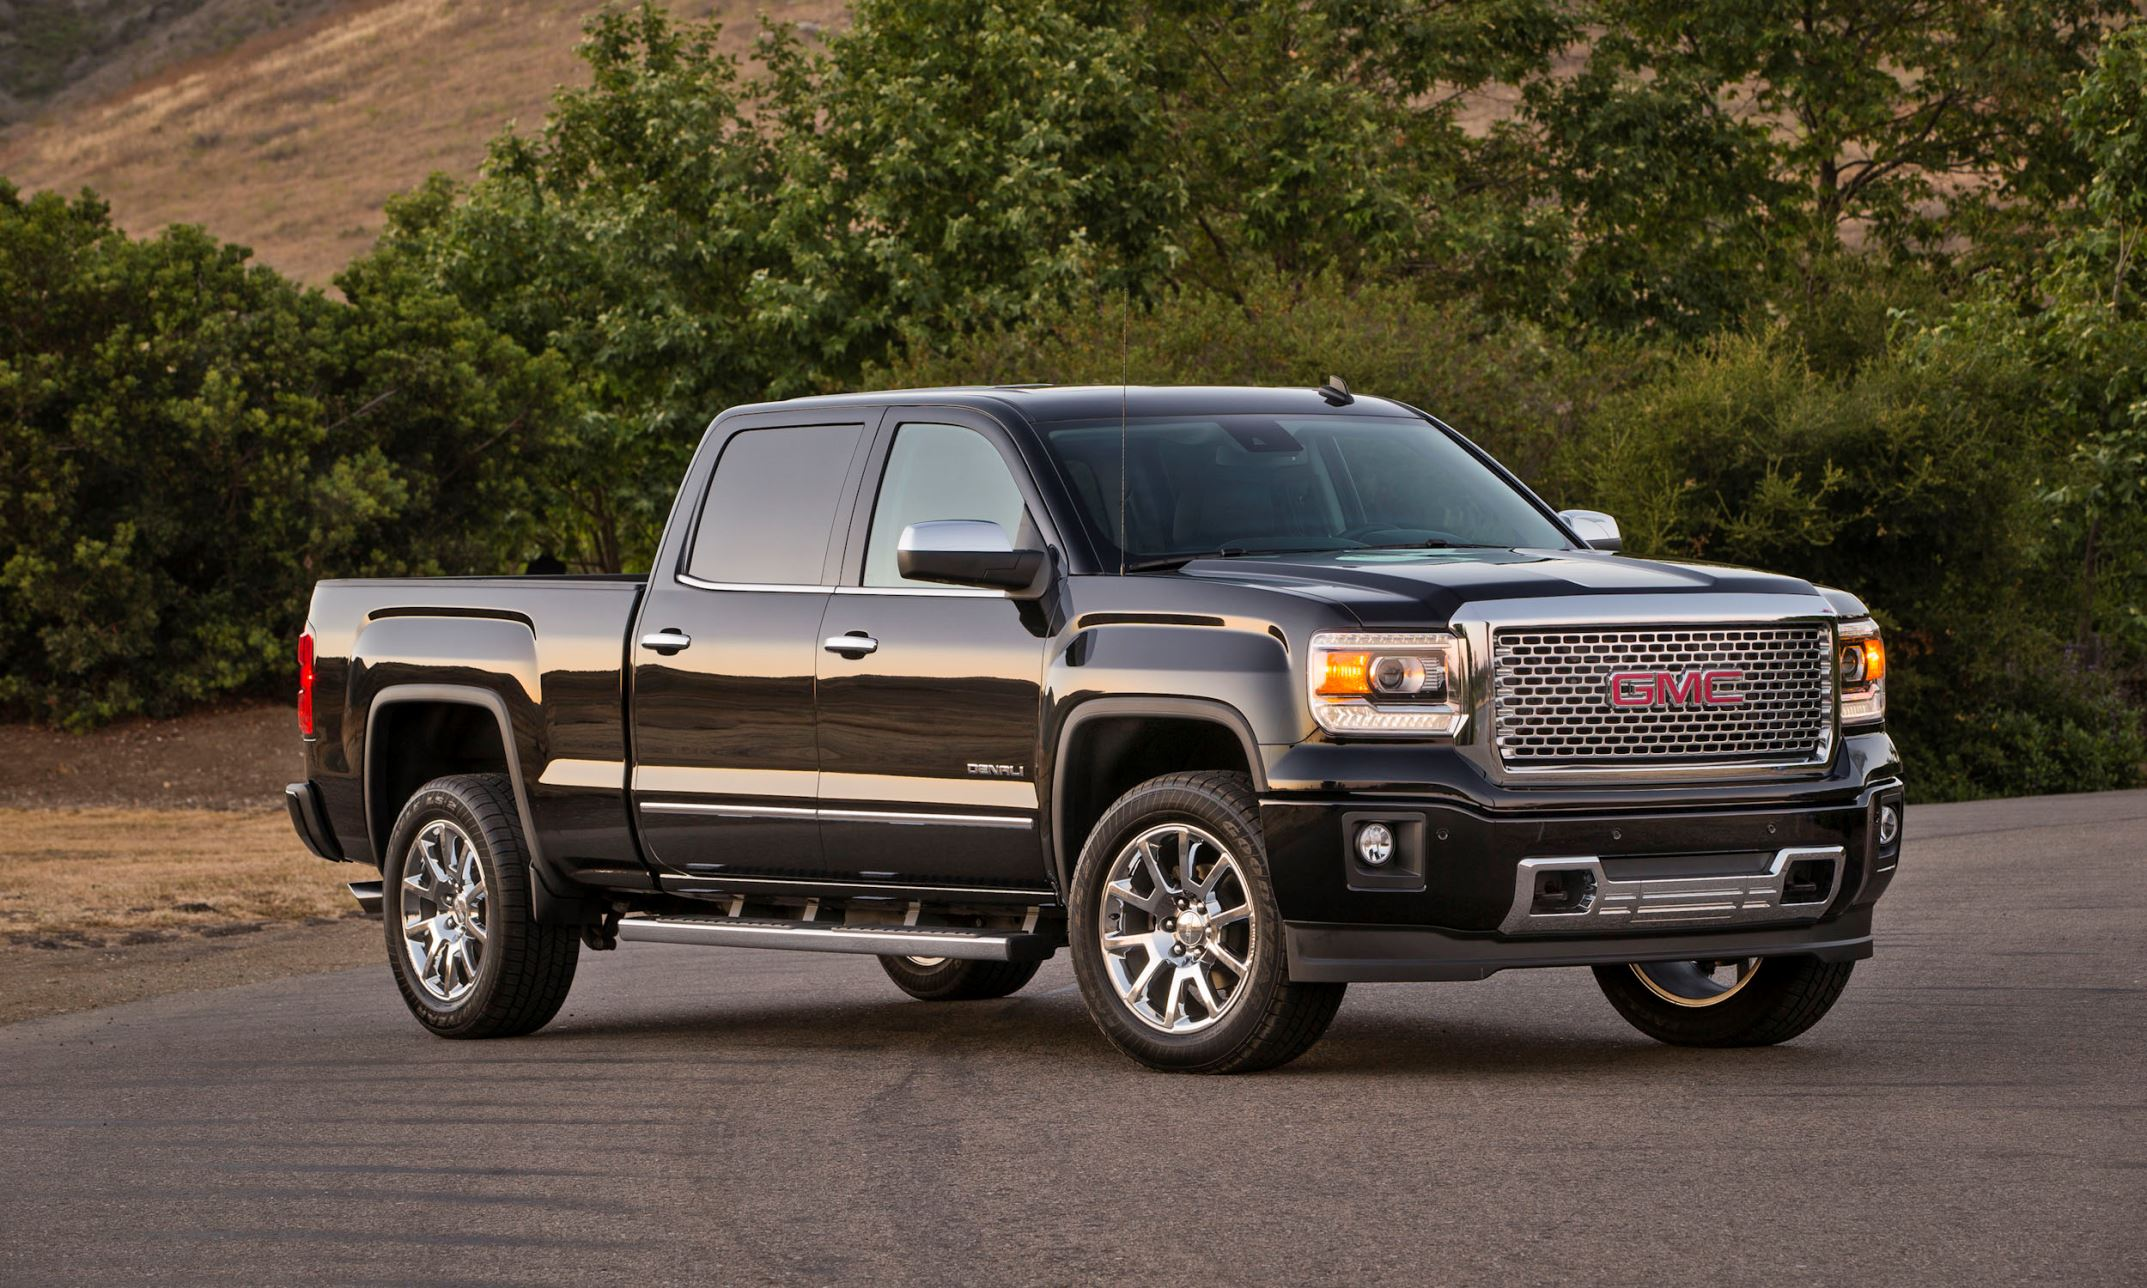 2014 gmc sierra 1500 4wd double cab 1sa swb specs and features msn autos. Black Bedroom Furniture Sets. Home Design Ideas